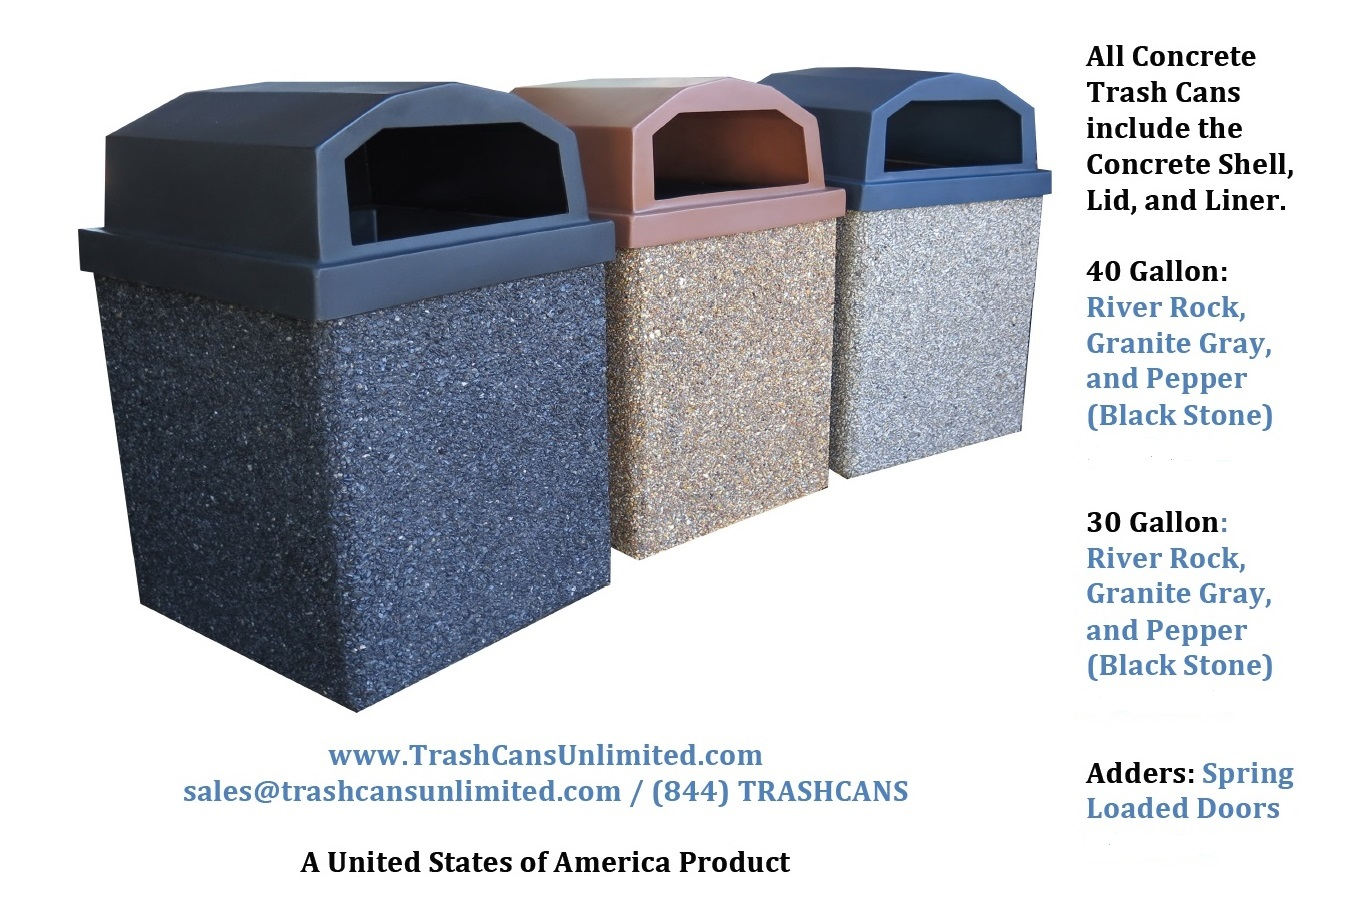 trashcans-unlimited-concrete-garbage-cans.jpg